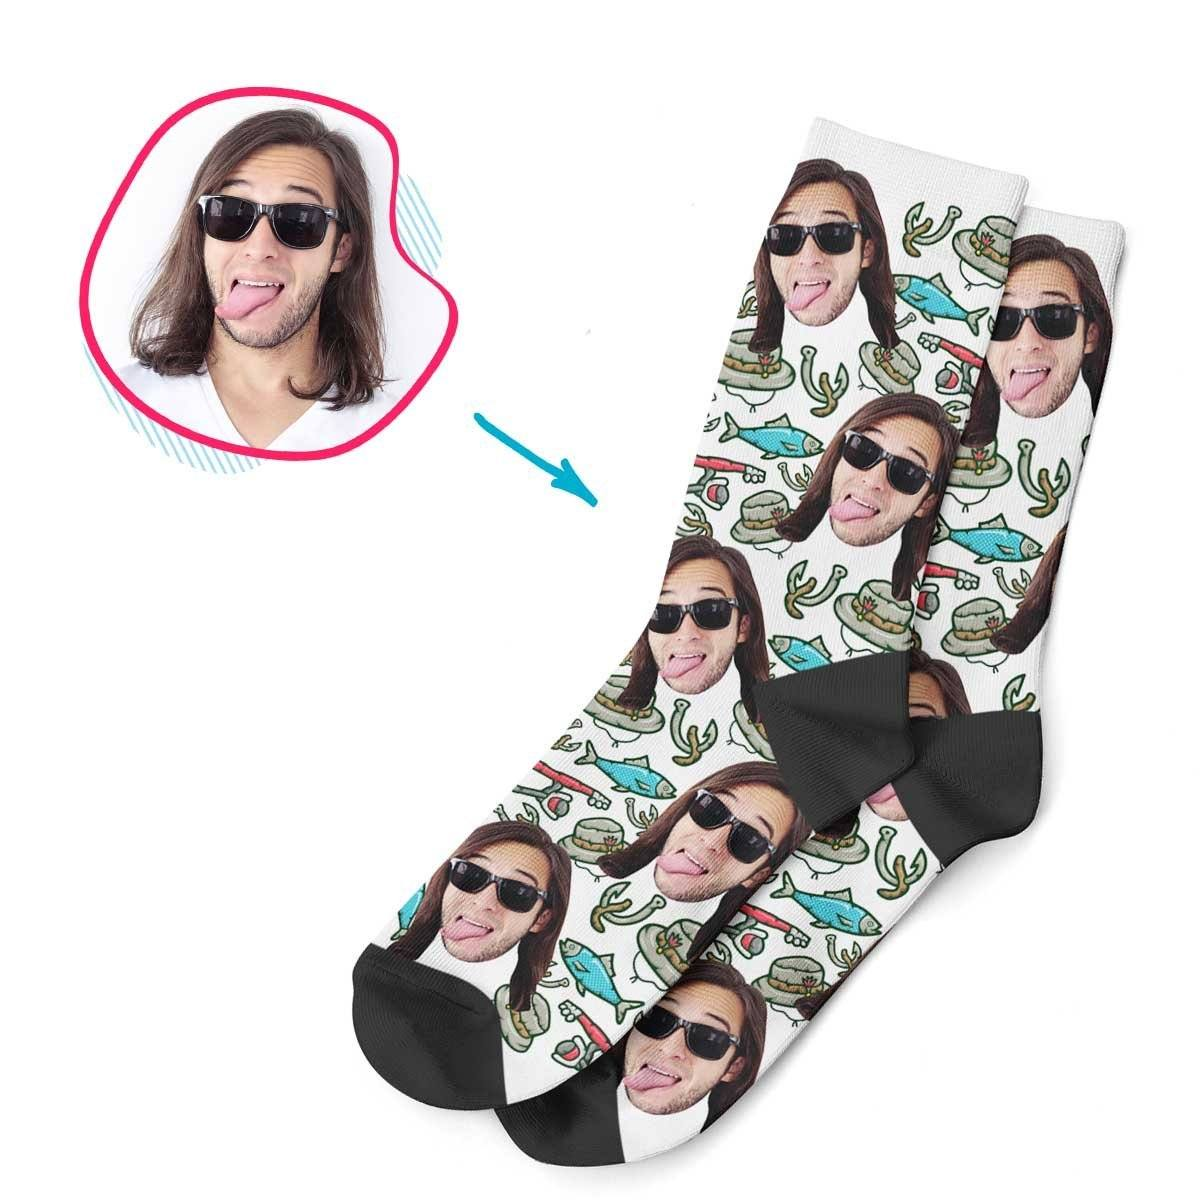 White Fishing personalized socks with photo of face printed on them